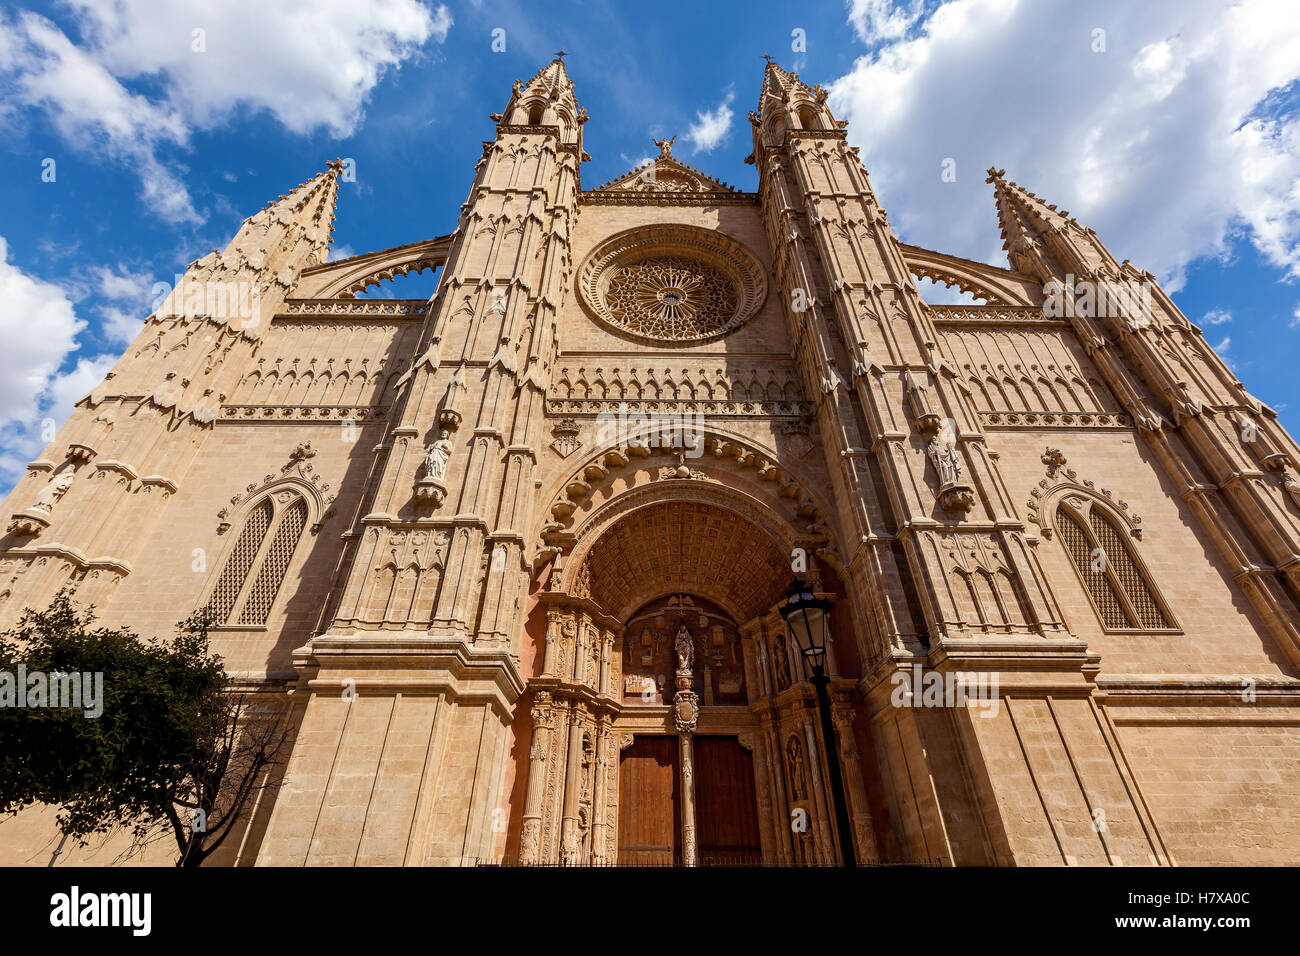 The Cathedral of Santa Maria of Palma, also La Seu is a Gothic Roman Catholic cathedral located in Palma, Mallorca, Spain. Stock Photo